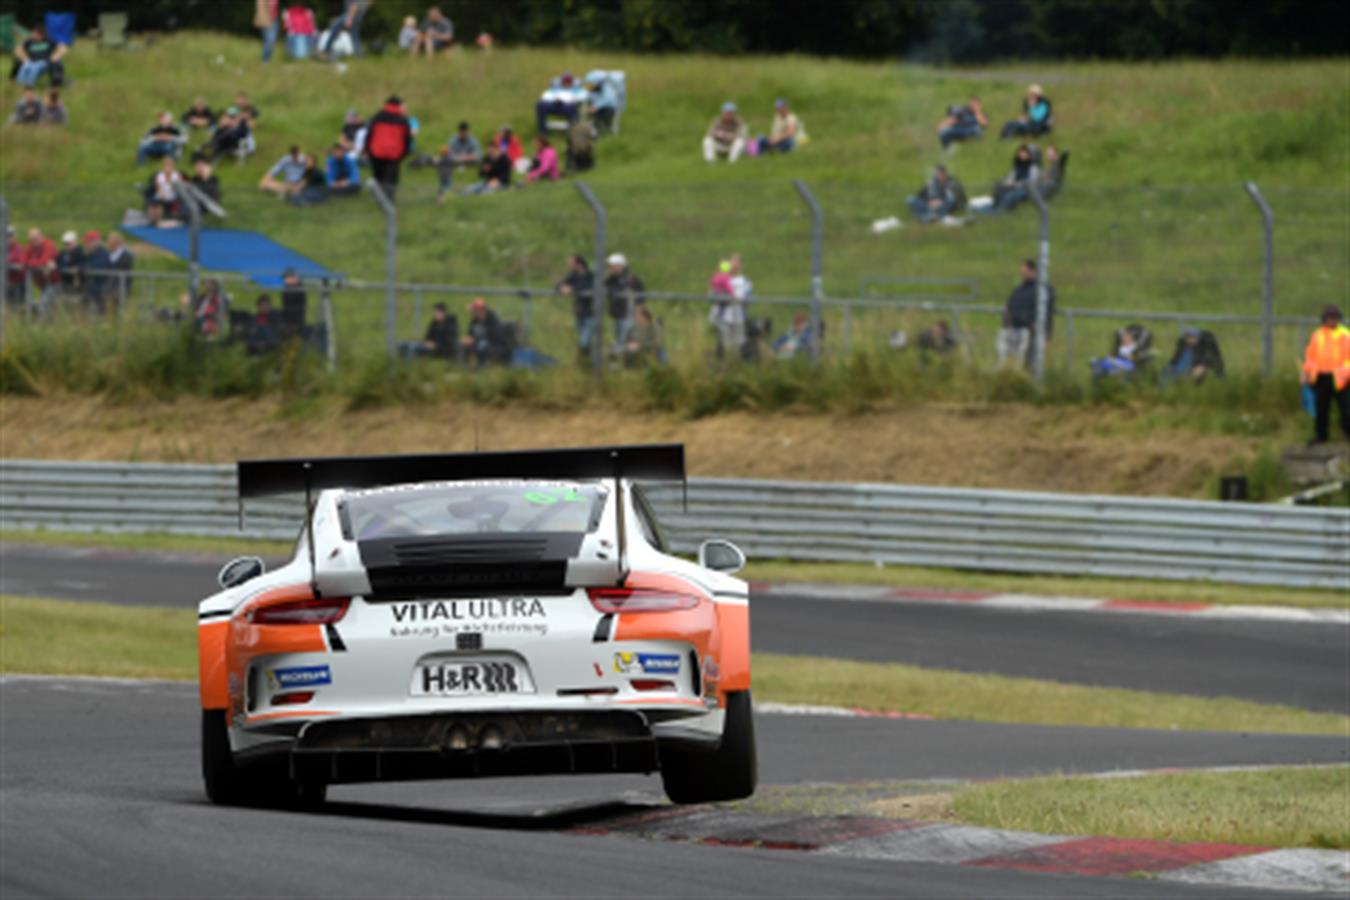 VLN 2016: Race 5 (July 15)